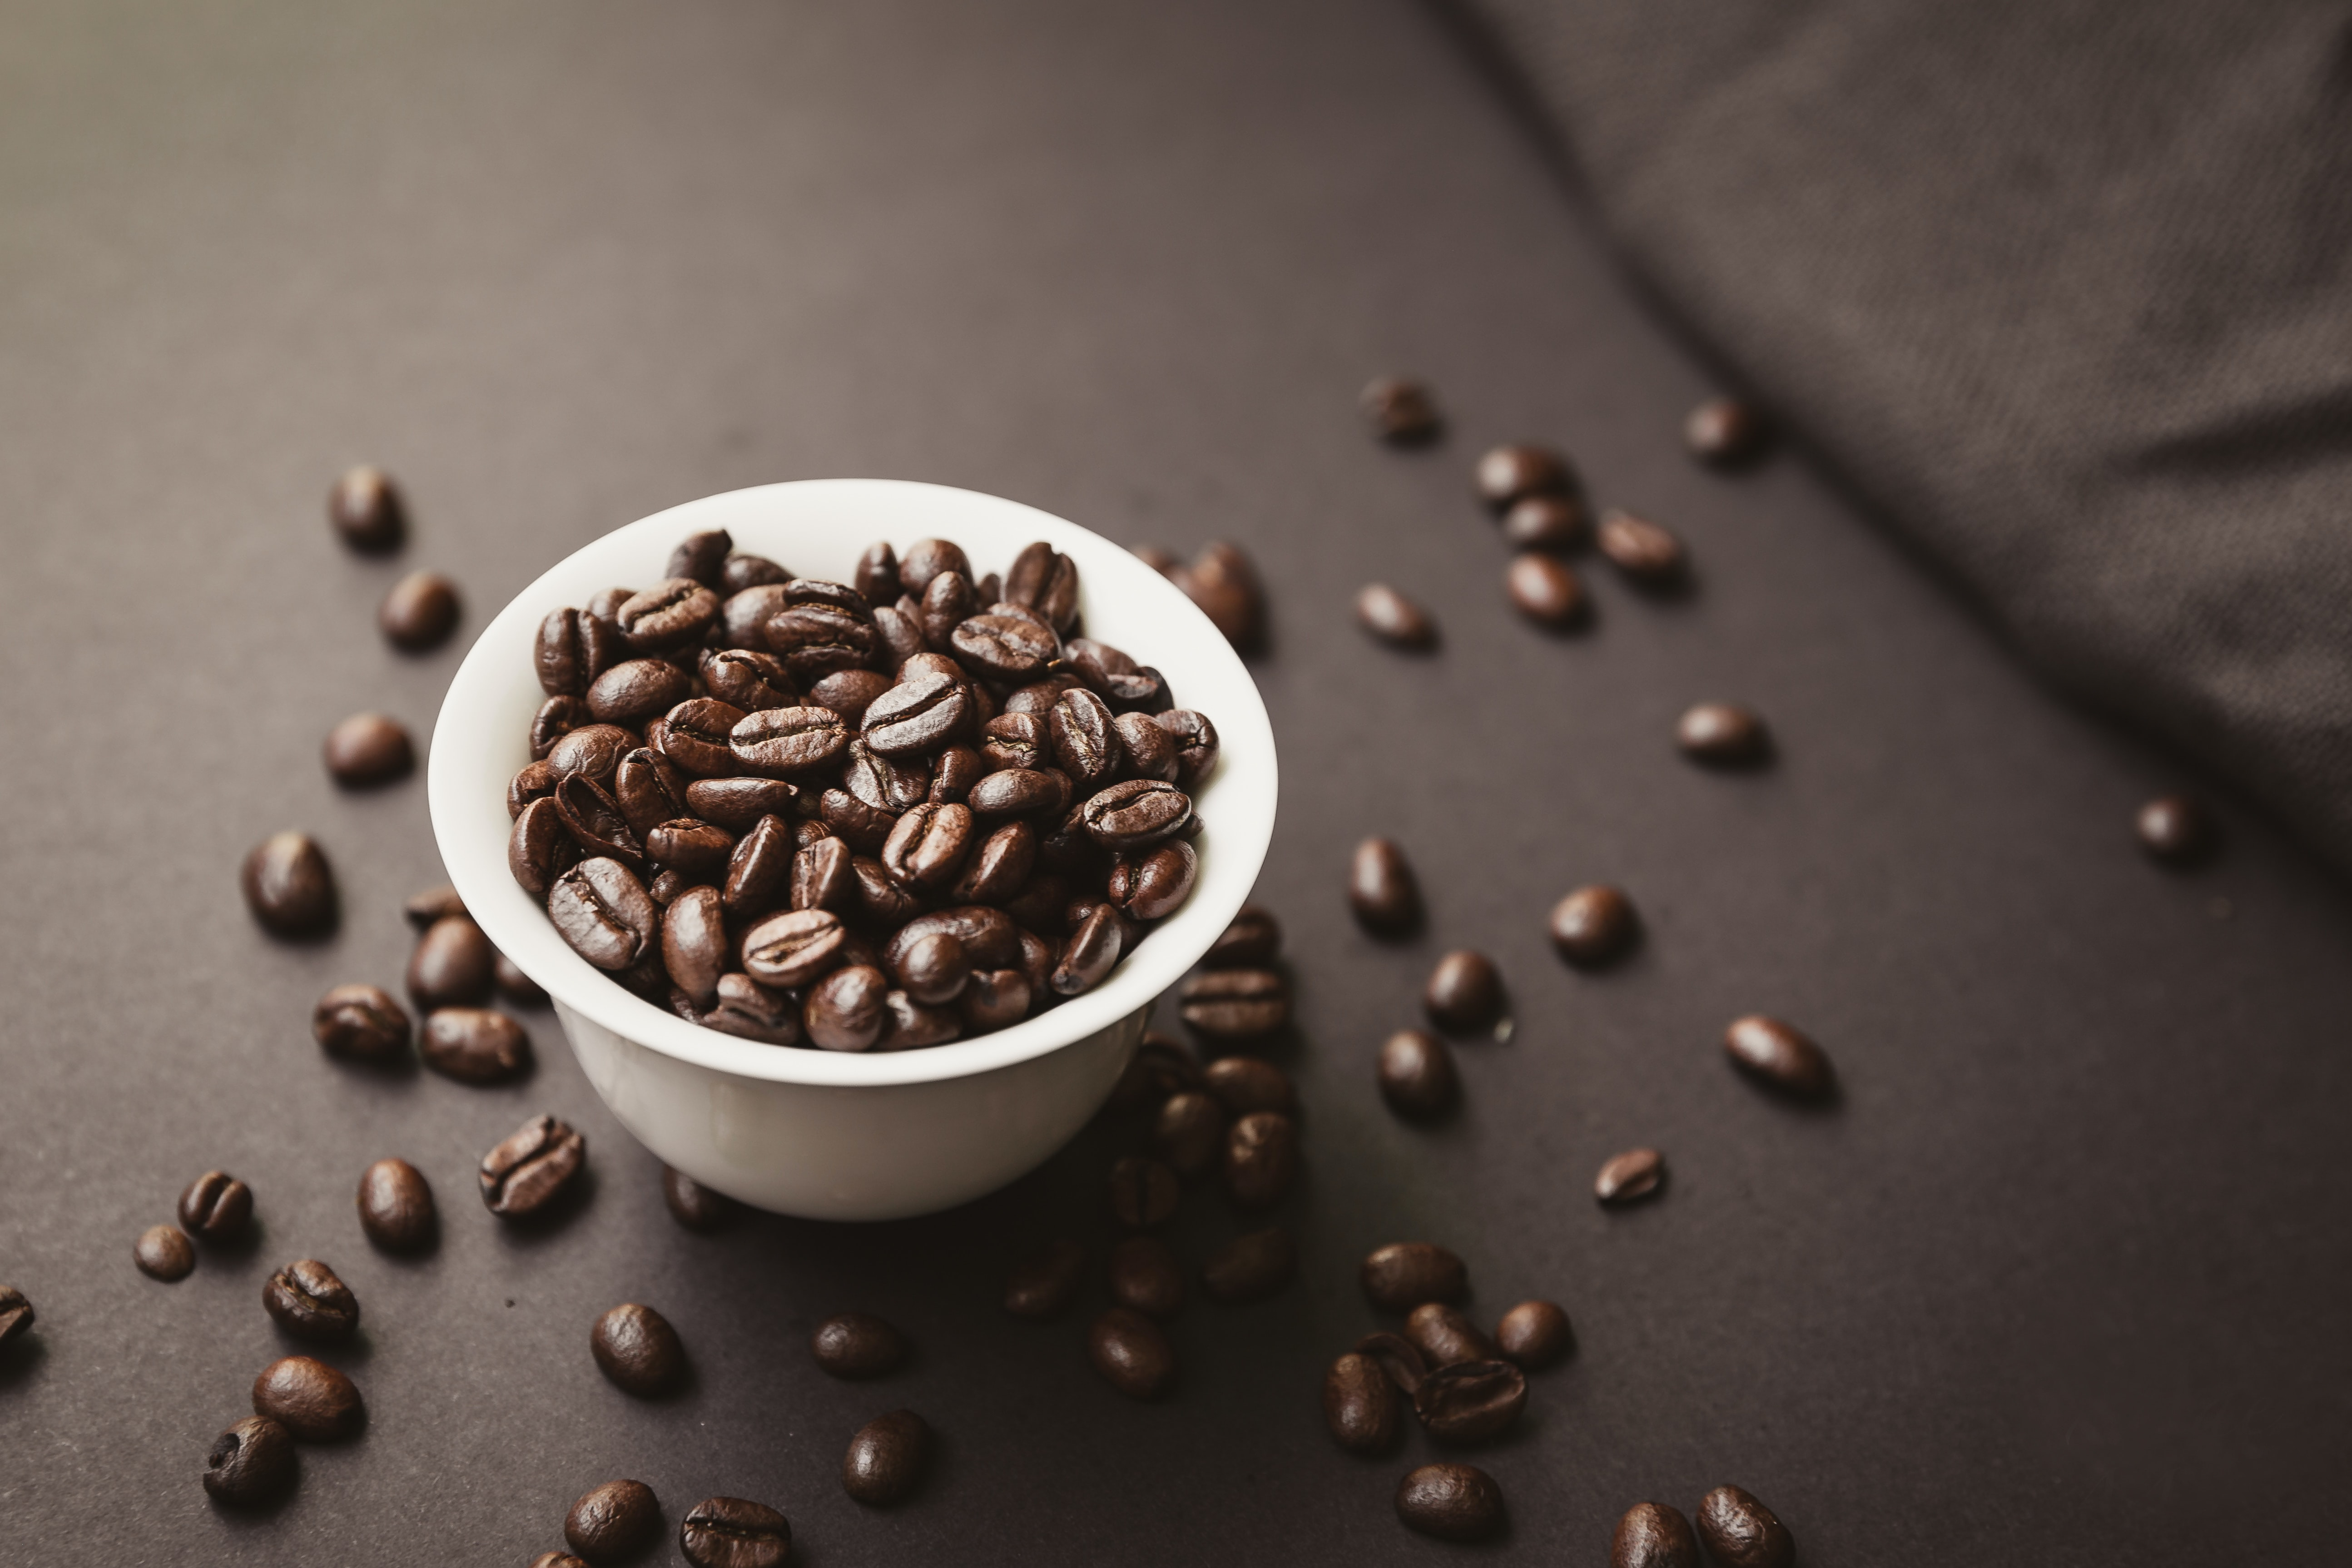 Darrin's Coffee: From Cast Iron Skillet to Coffee Bean